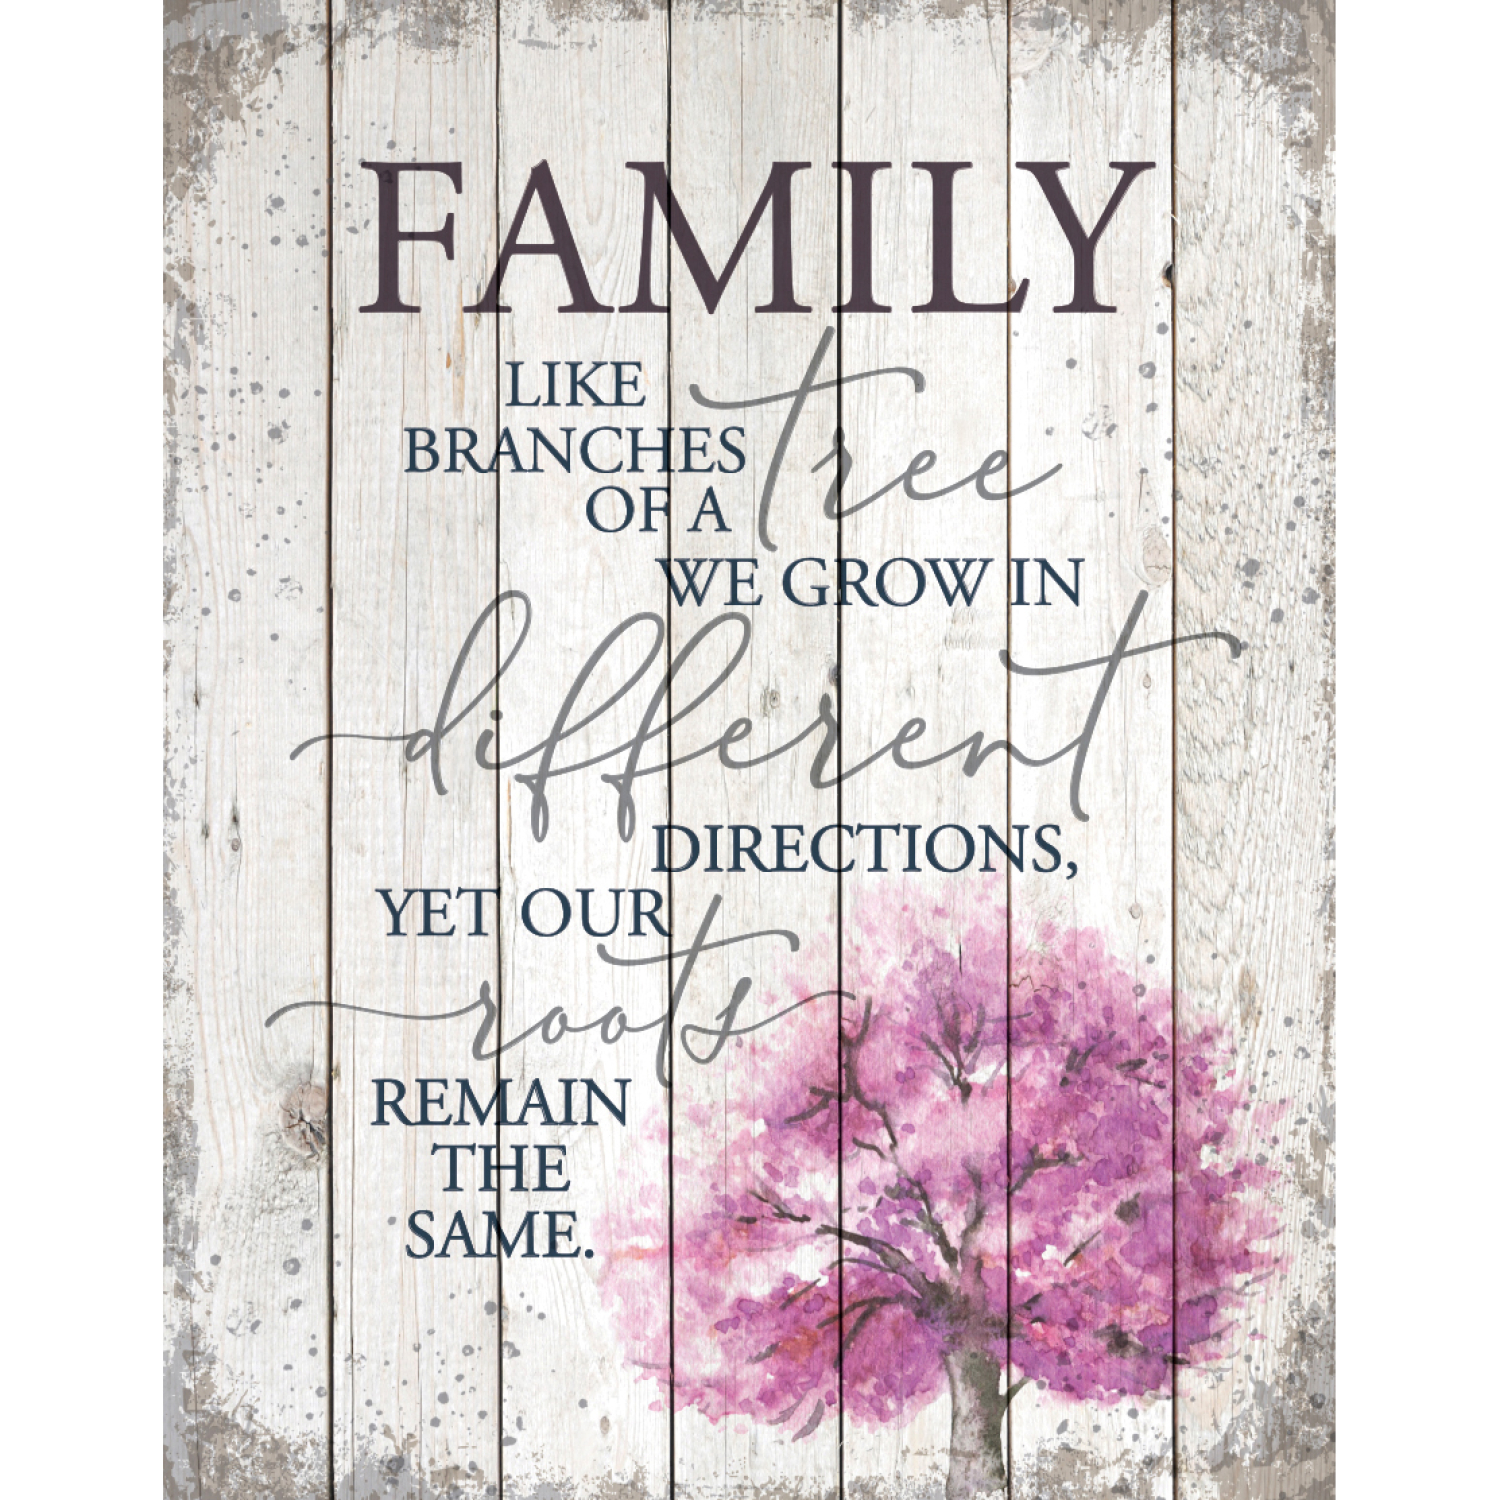 Family-Like Branches On A Tree Wood Plaque 11.75 Inches X 15 Inches